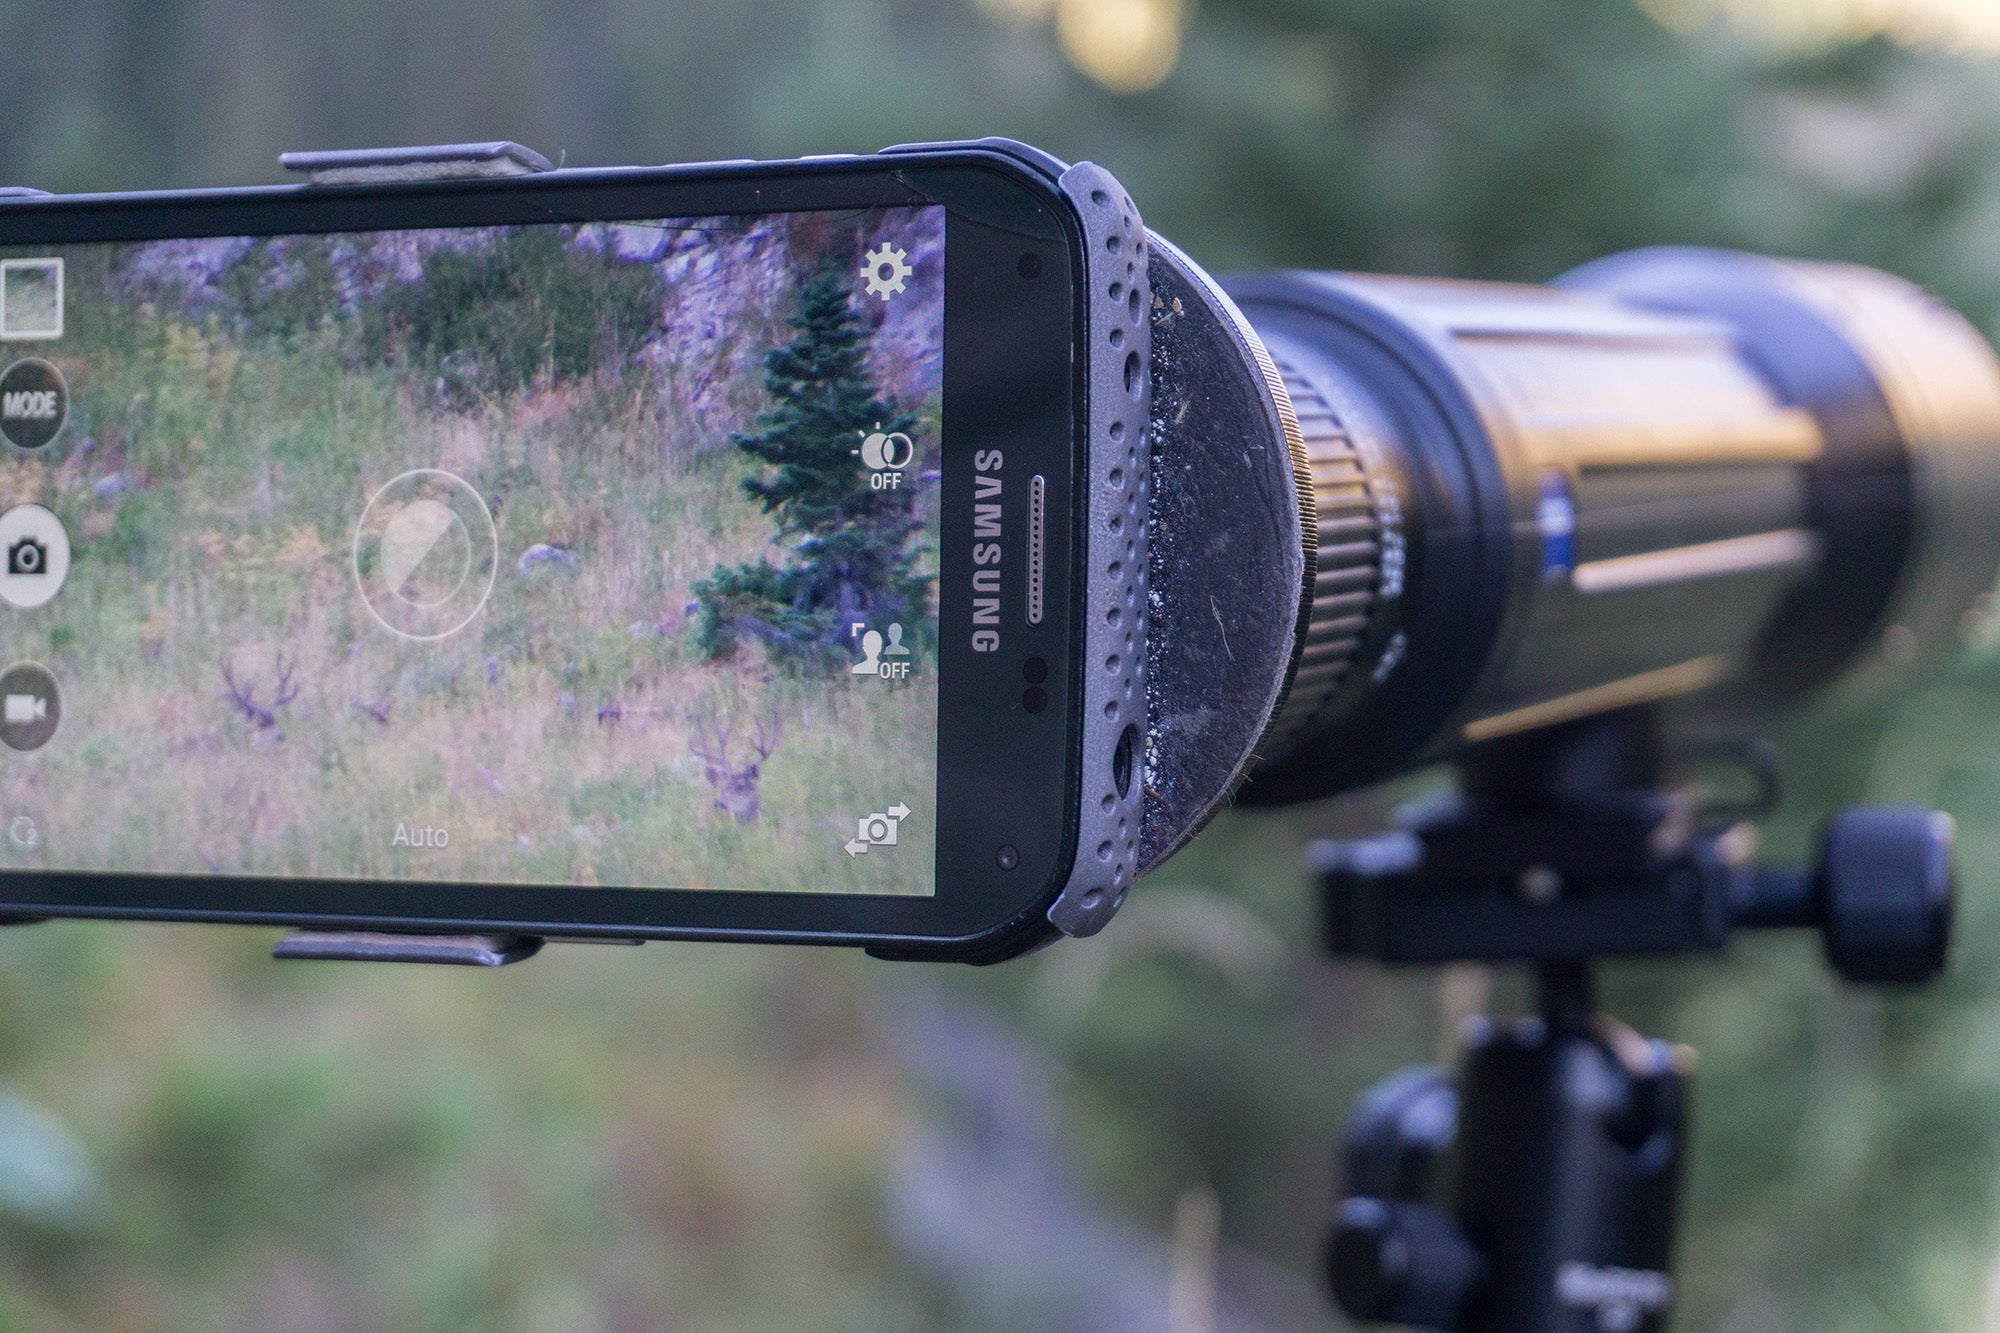 Using ball head for digiscoping